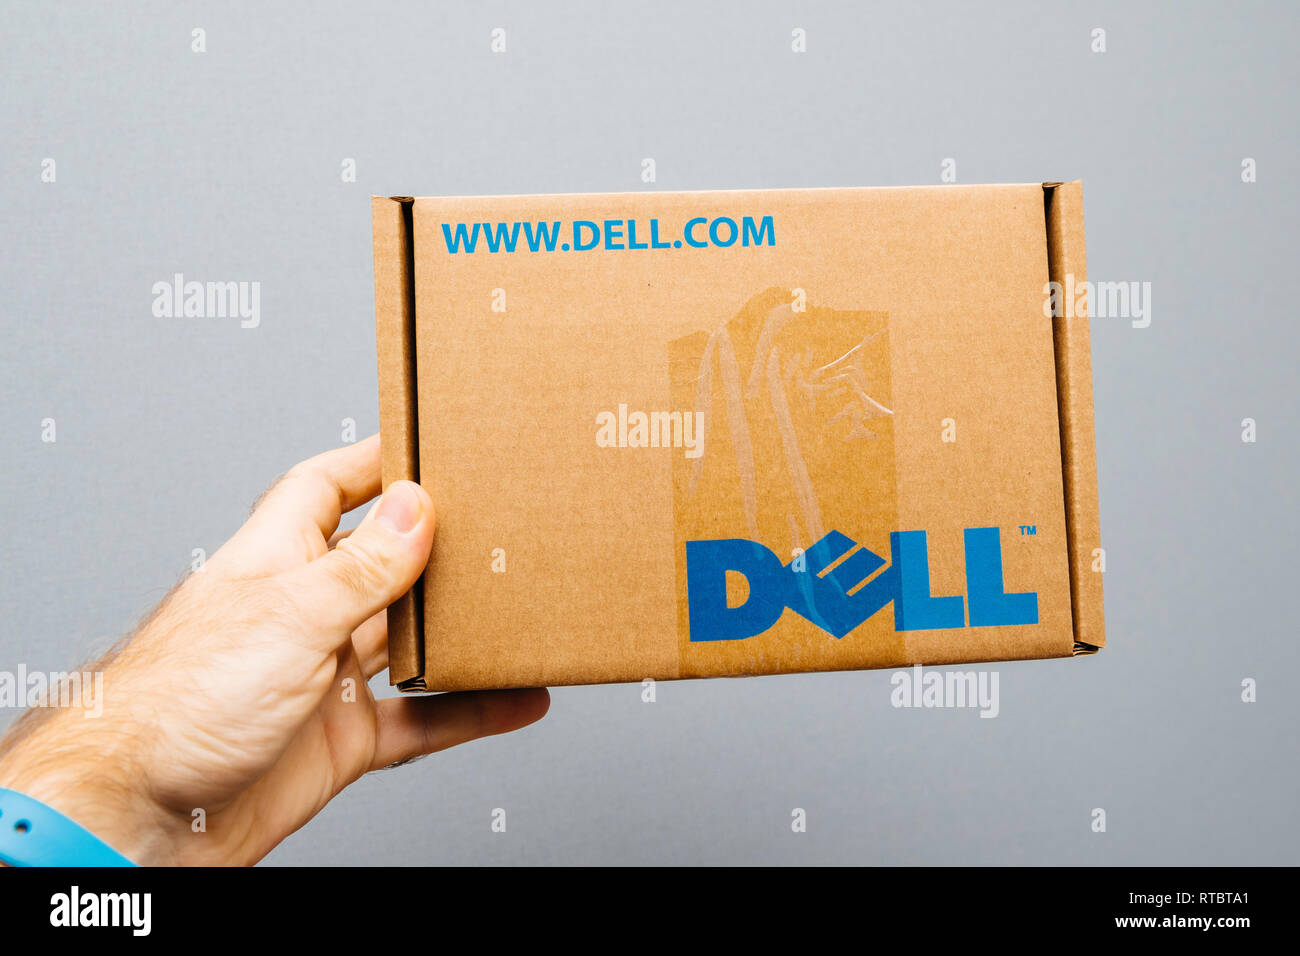 Dell Laptop Stock Photos & Dell Laptop Stock Images - Alamy